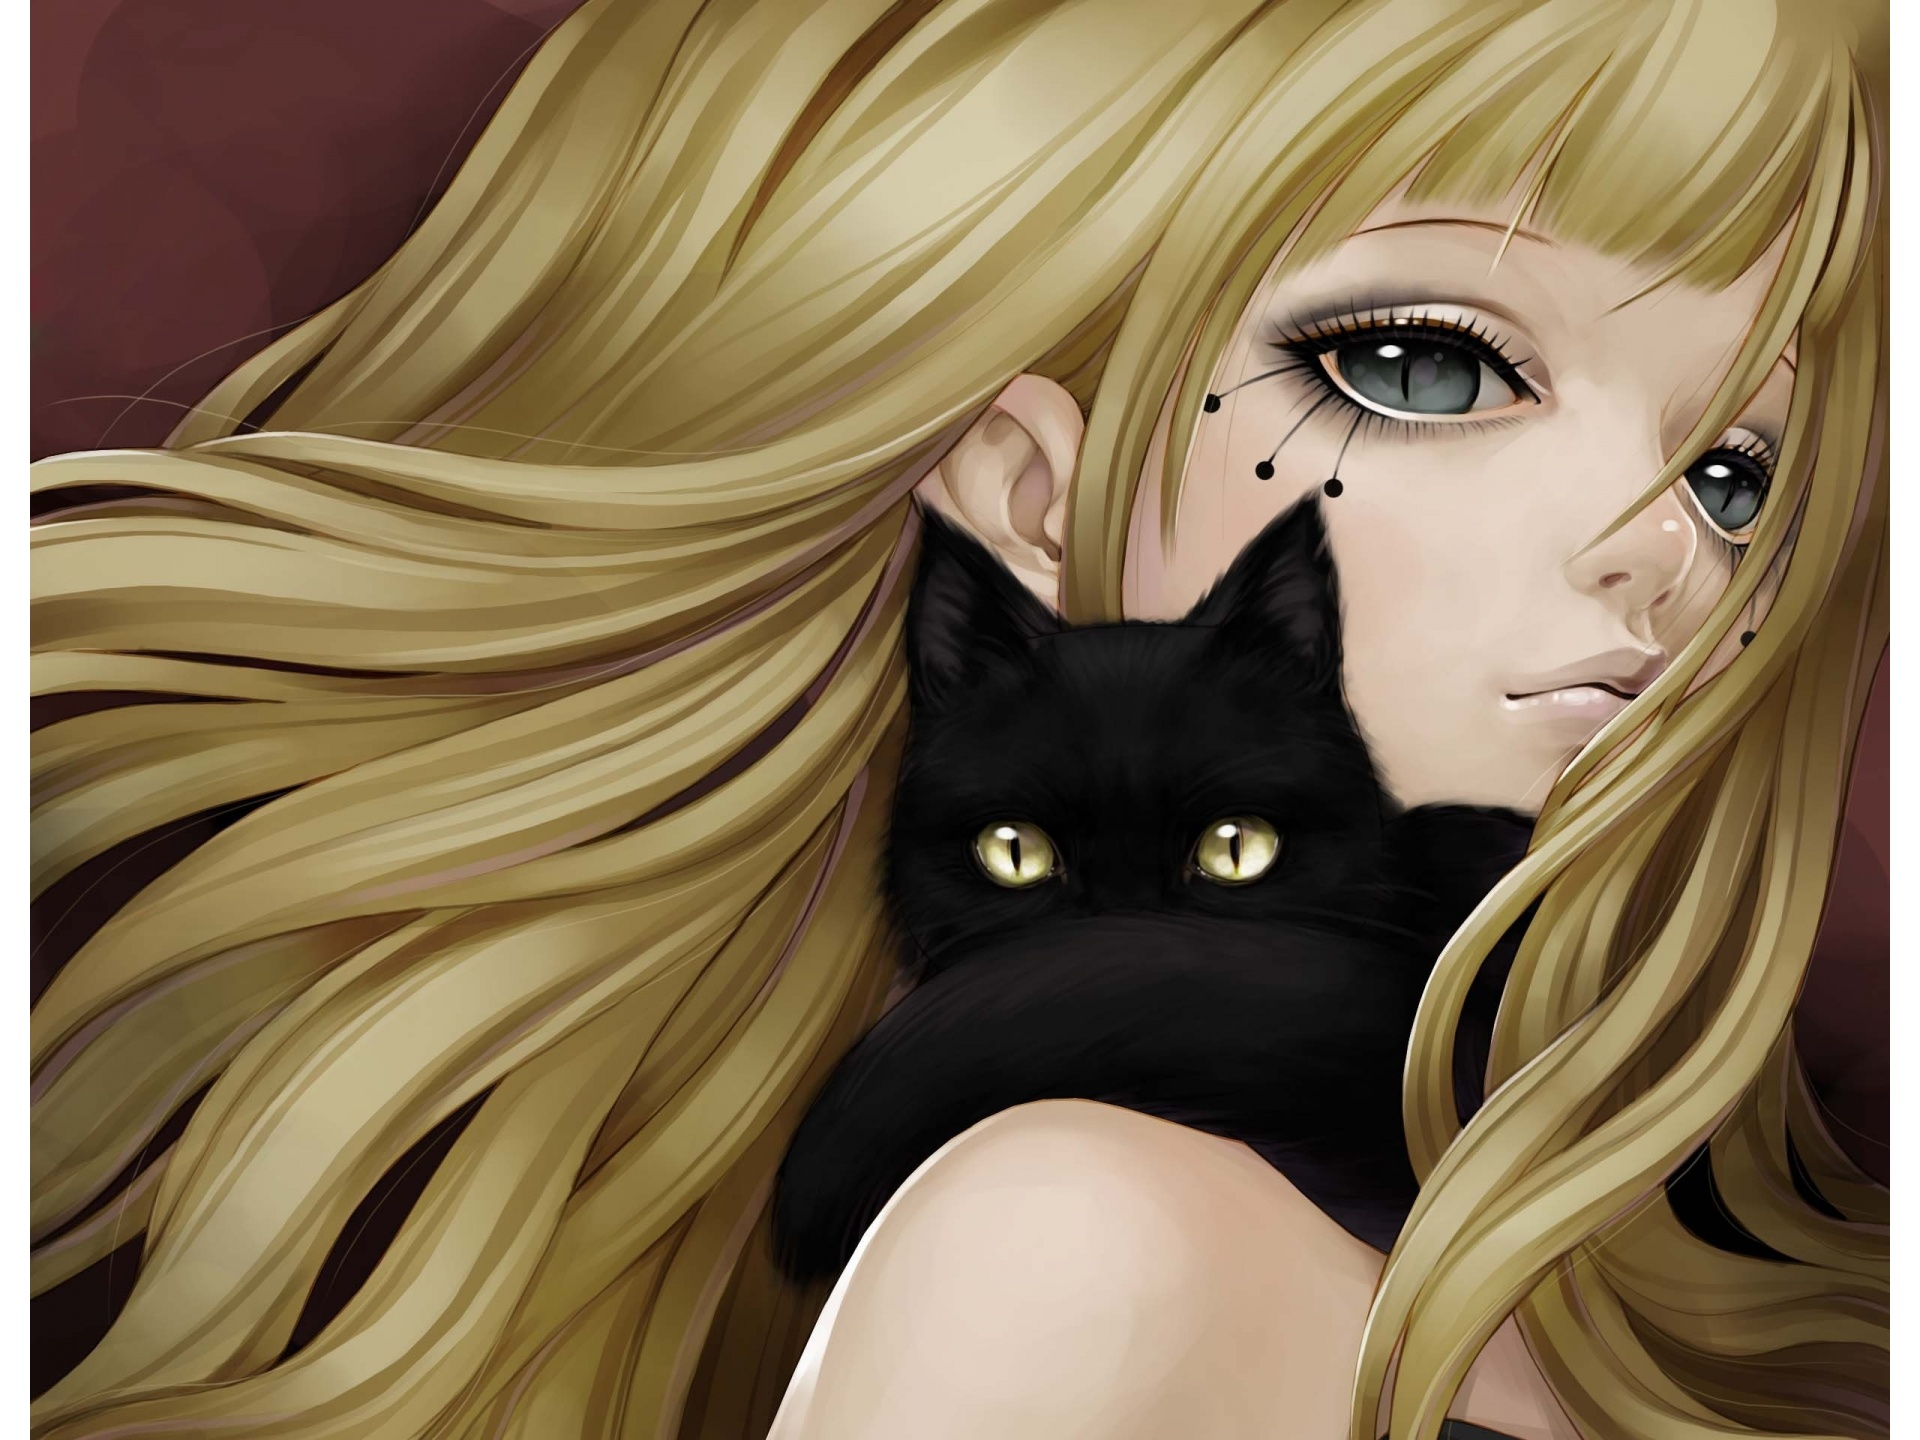 Anime girl and black cat 1920 x 1440 download close